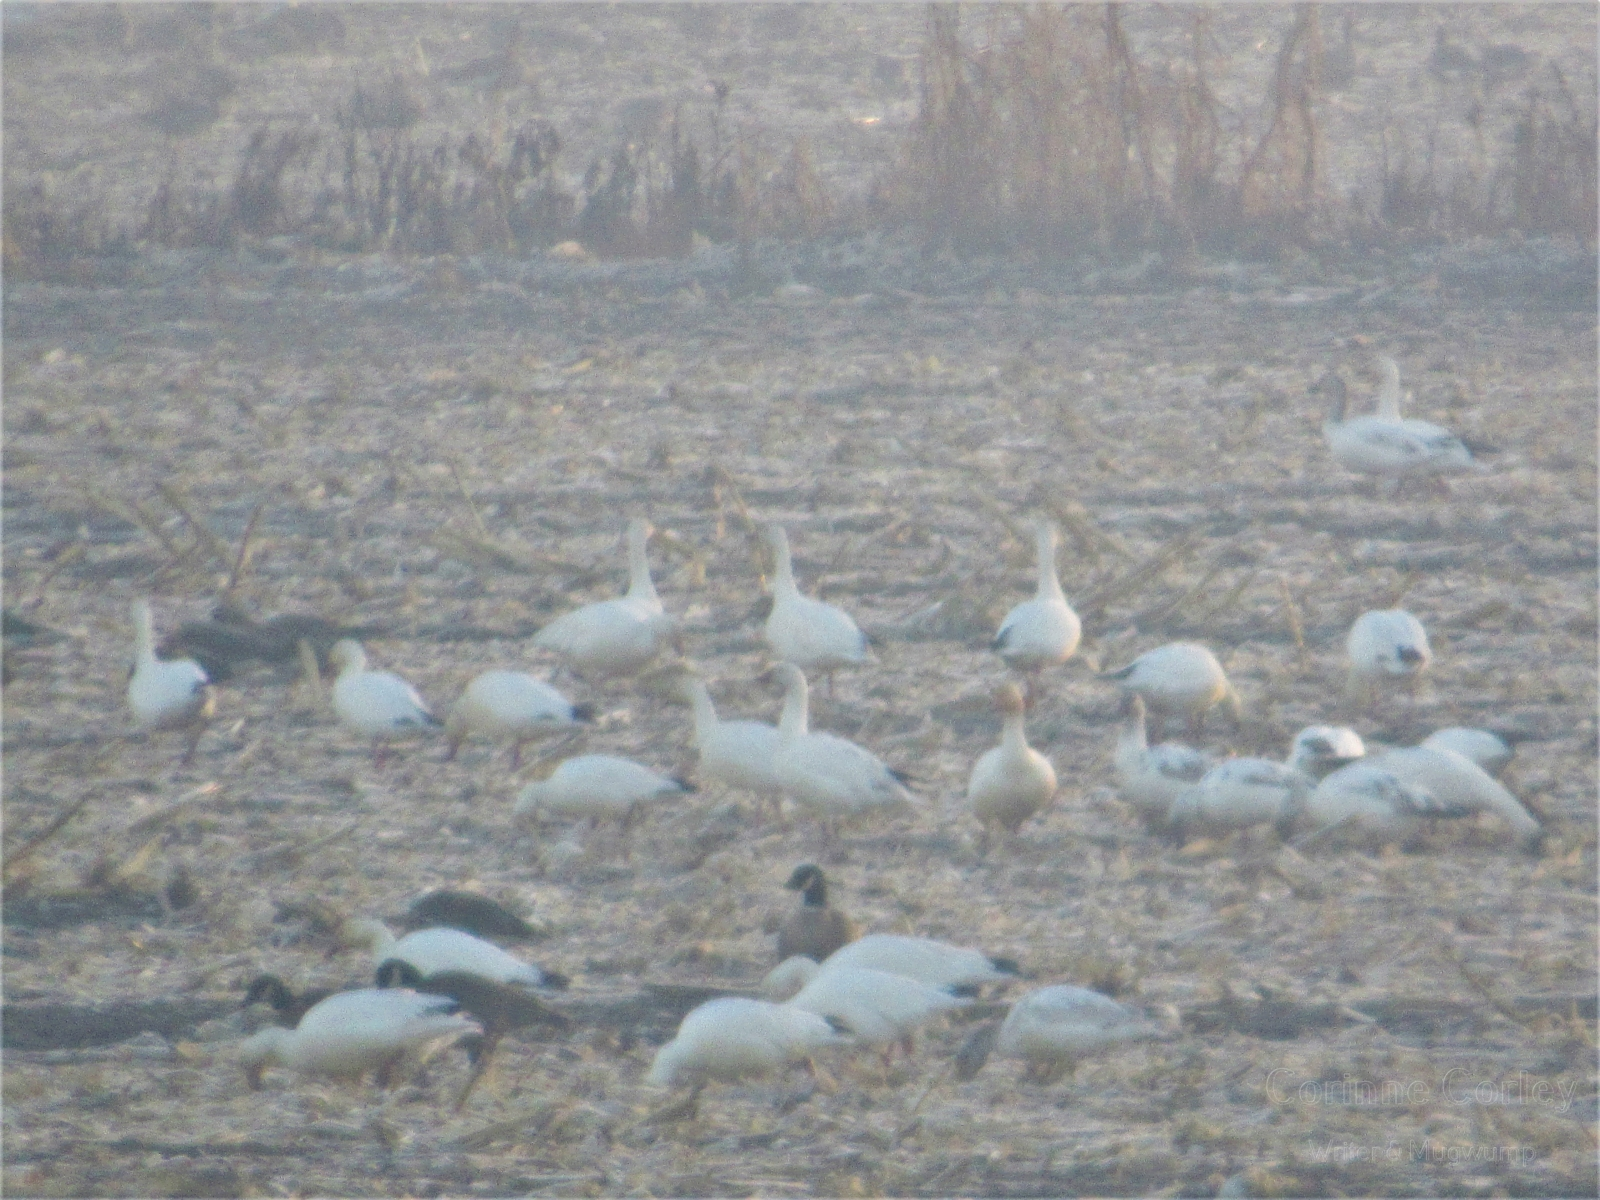 Low-fog-and-snow-geese-Copy-Copy